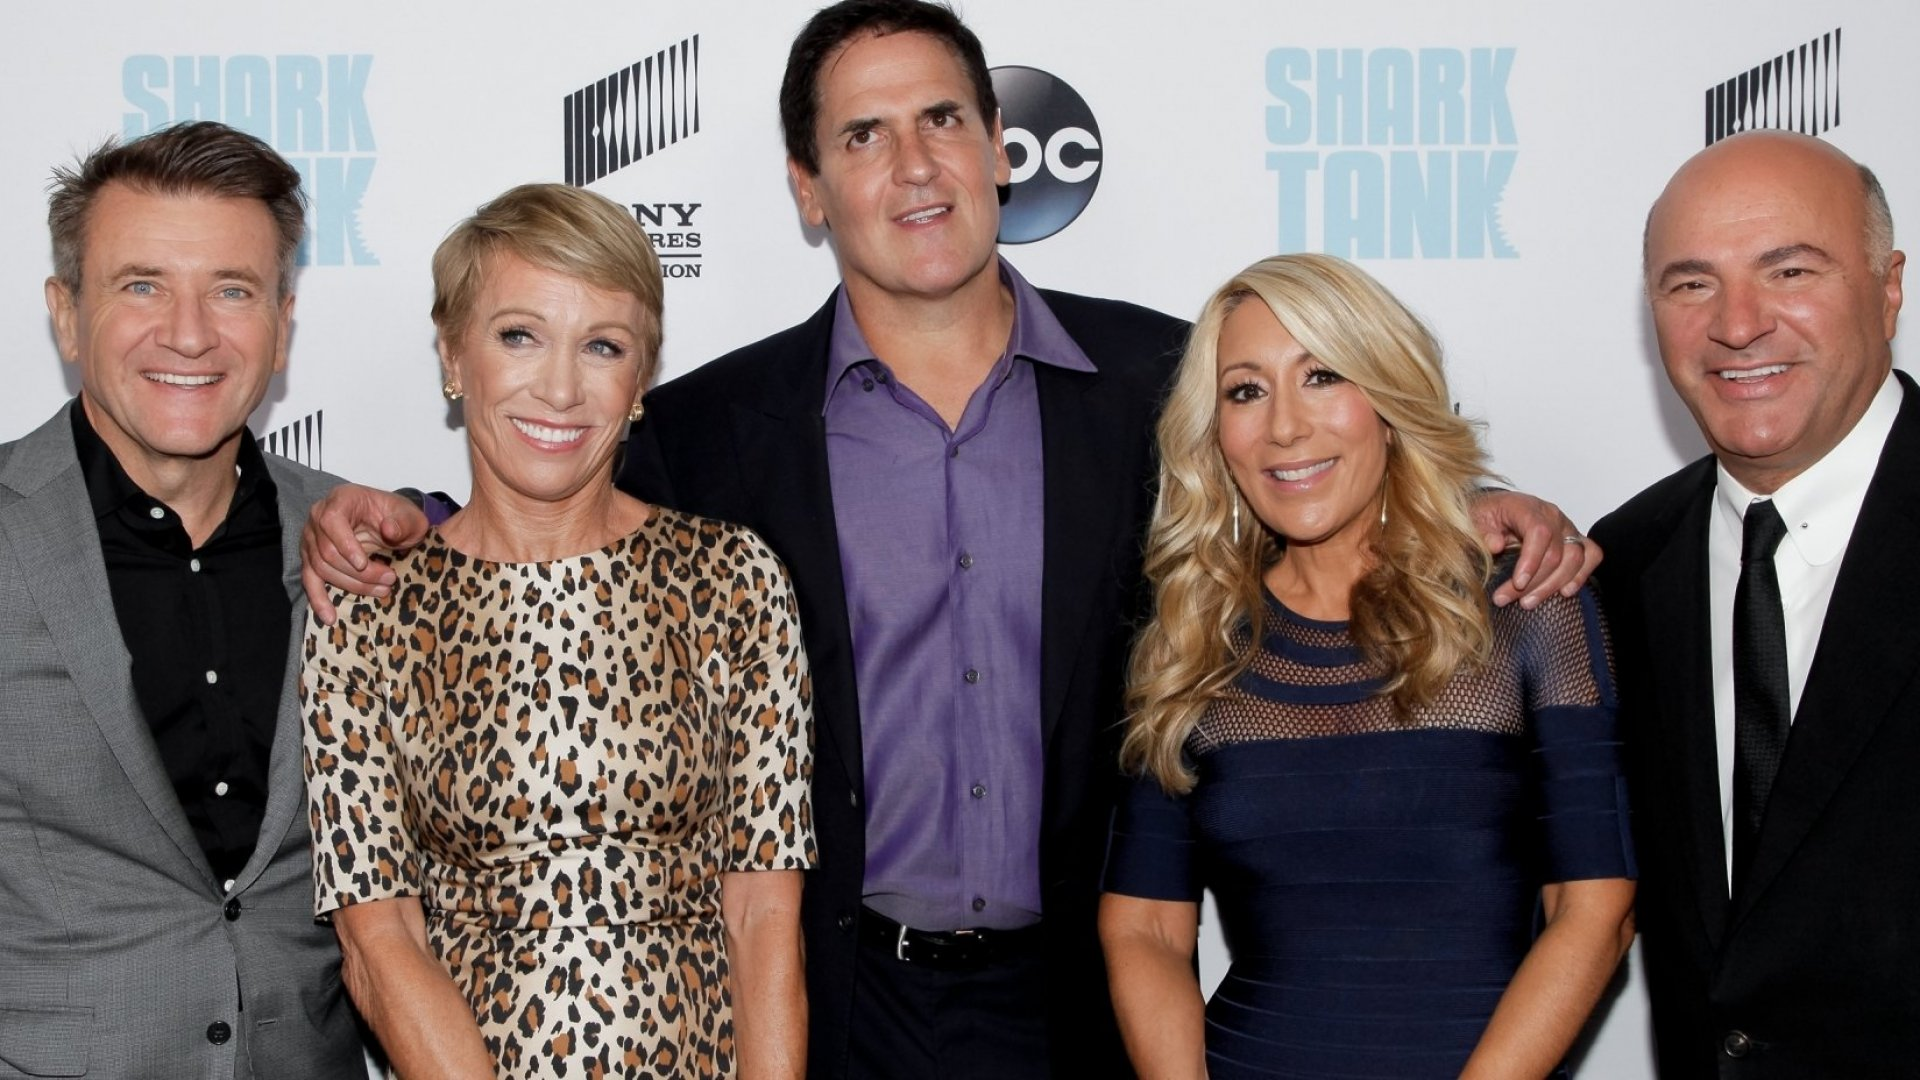 Shark Tank's Barbara Corcoran Holding Her Own (Fake) Funeral Sounds Crazy, but There's 1 Reason It Makes Perfect Sense